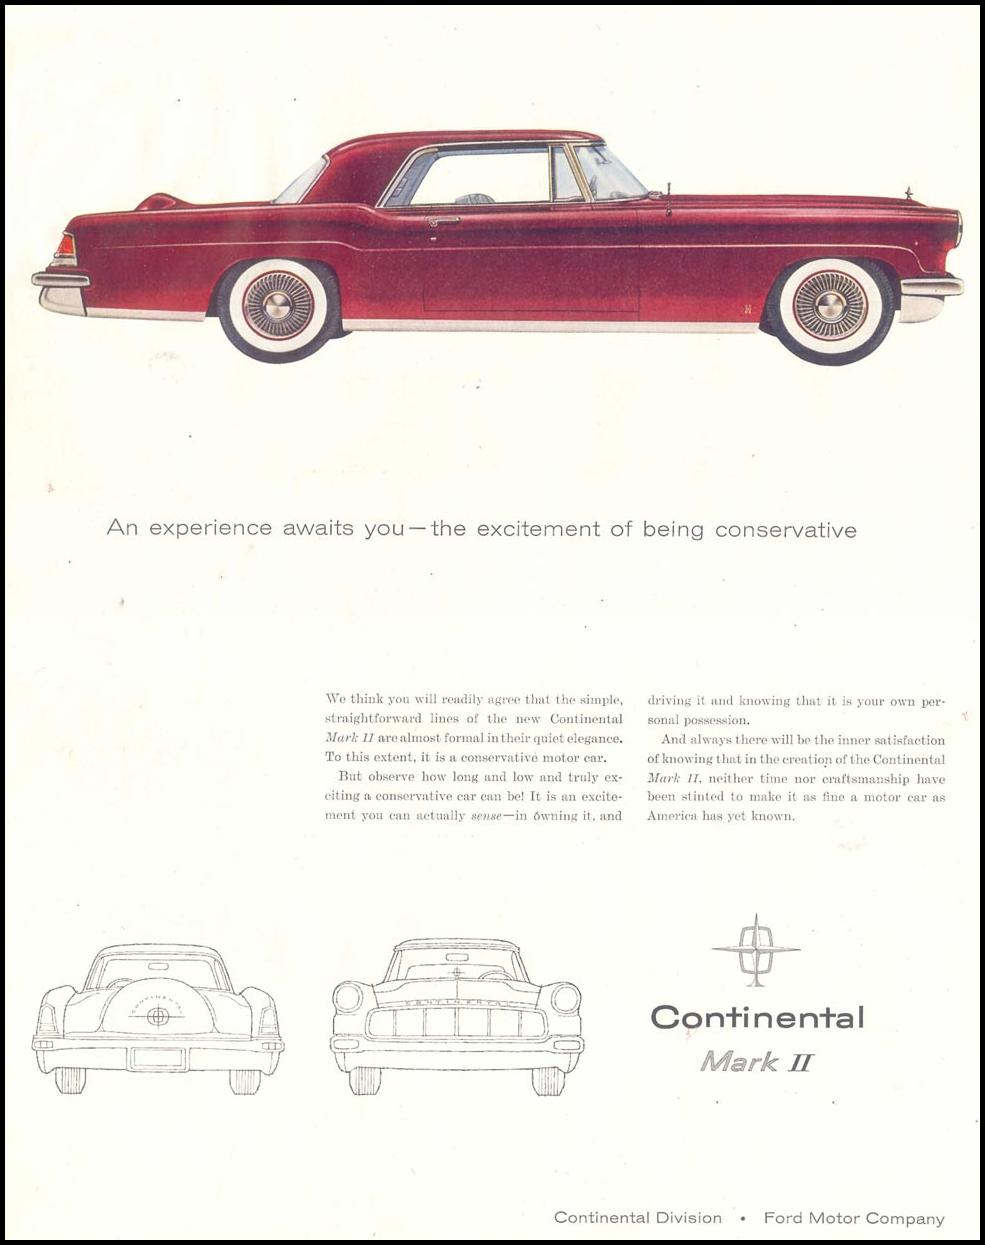 LINCOLN AUTOMOBILES SATURDAY EVENING POST 12/10/1955 p. 53